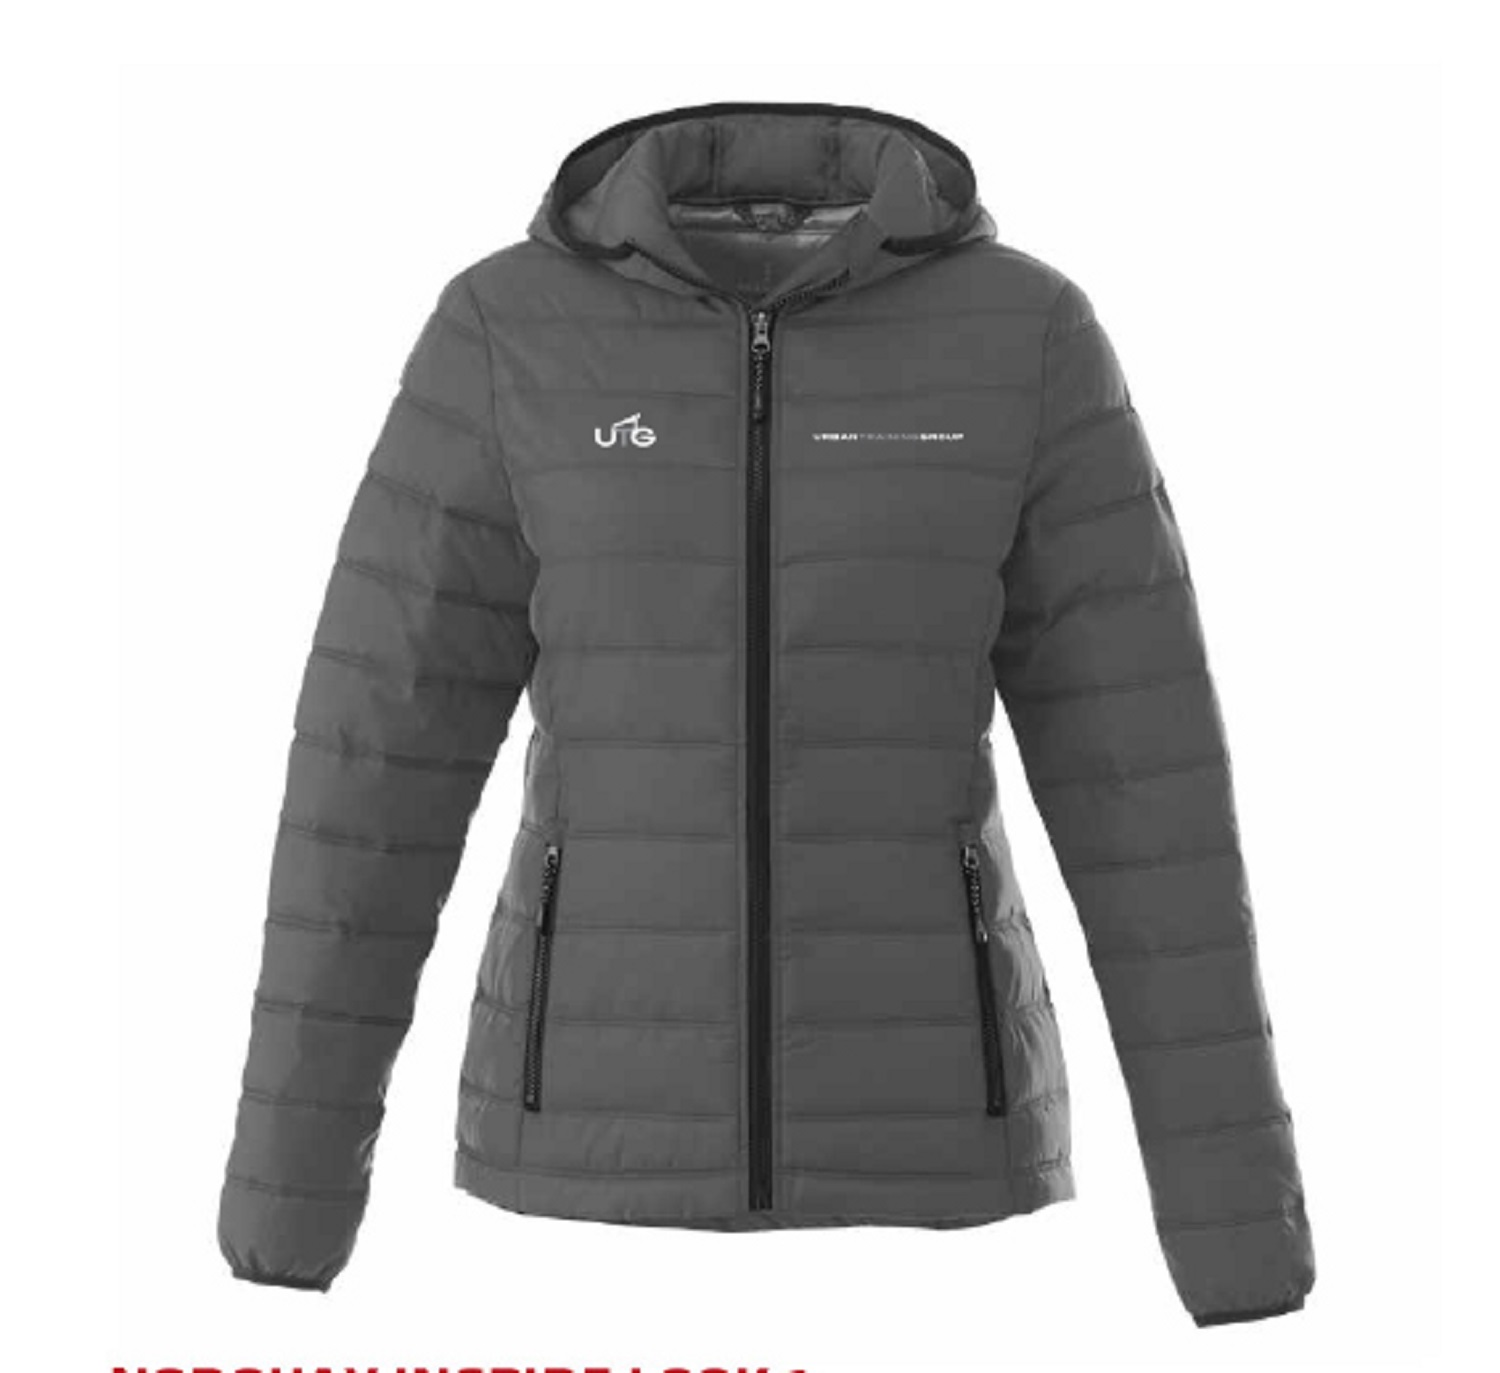 Norquay Men's Insulated Jacket, #19541 - Embroidered